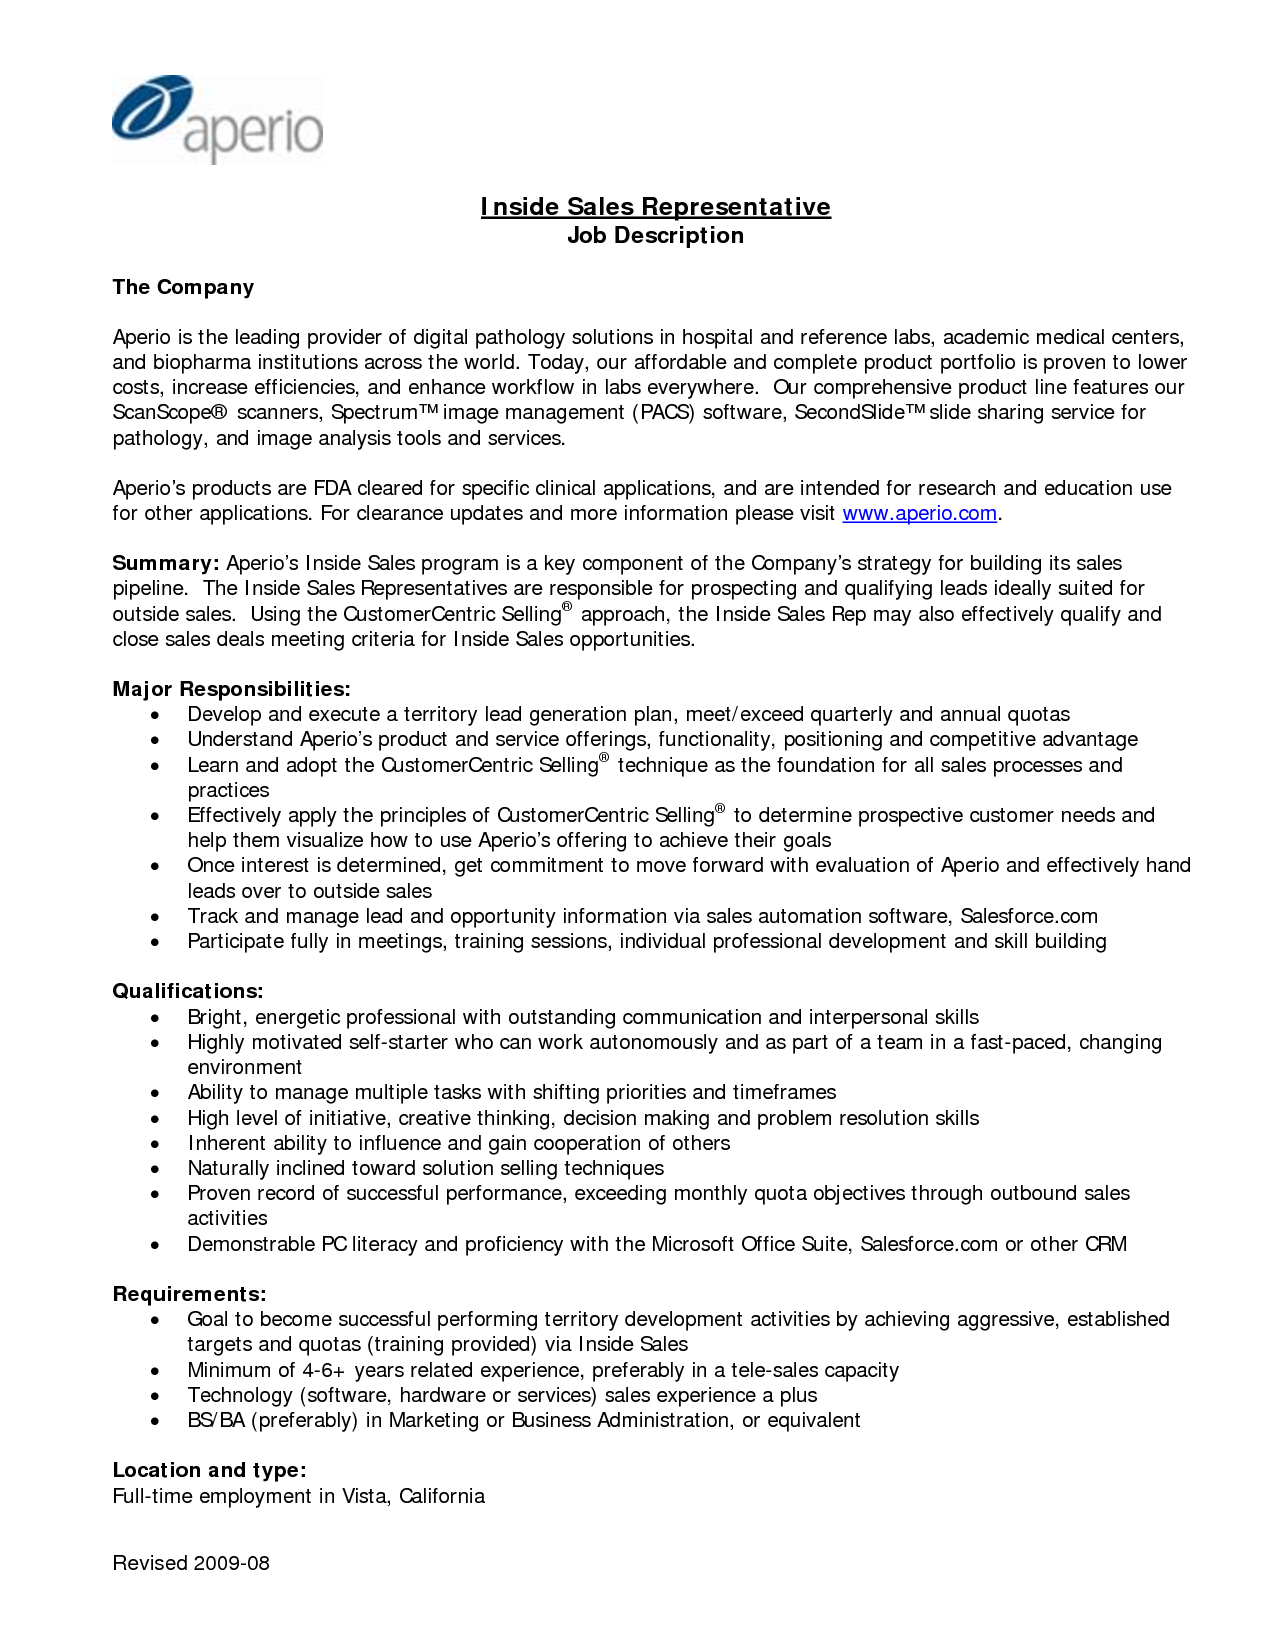 sales representative job description for resume